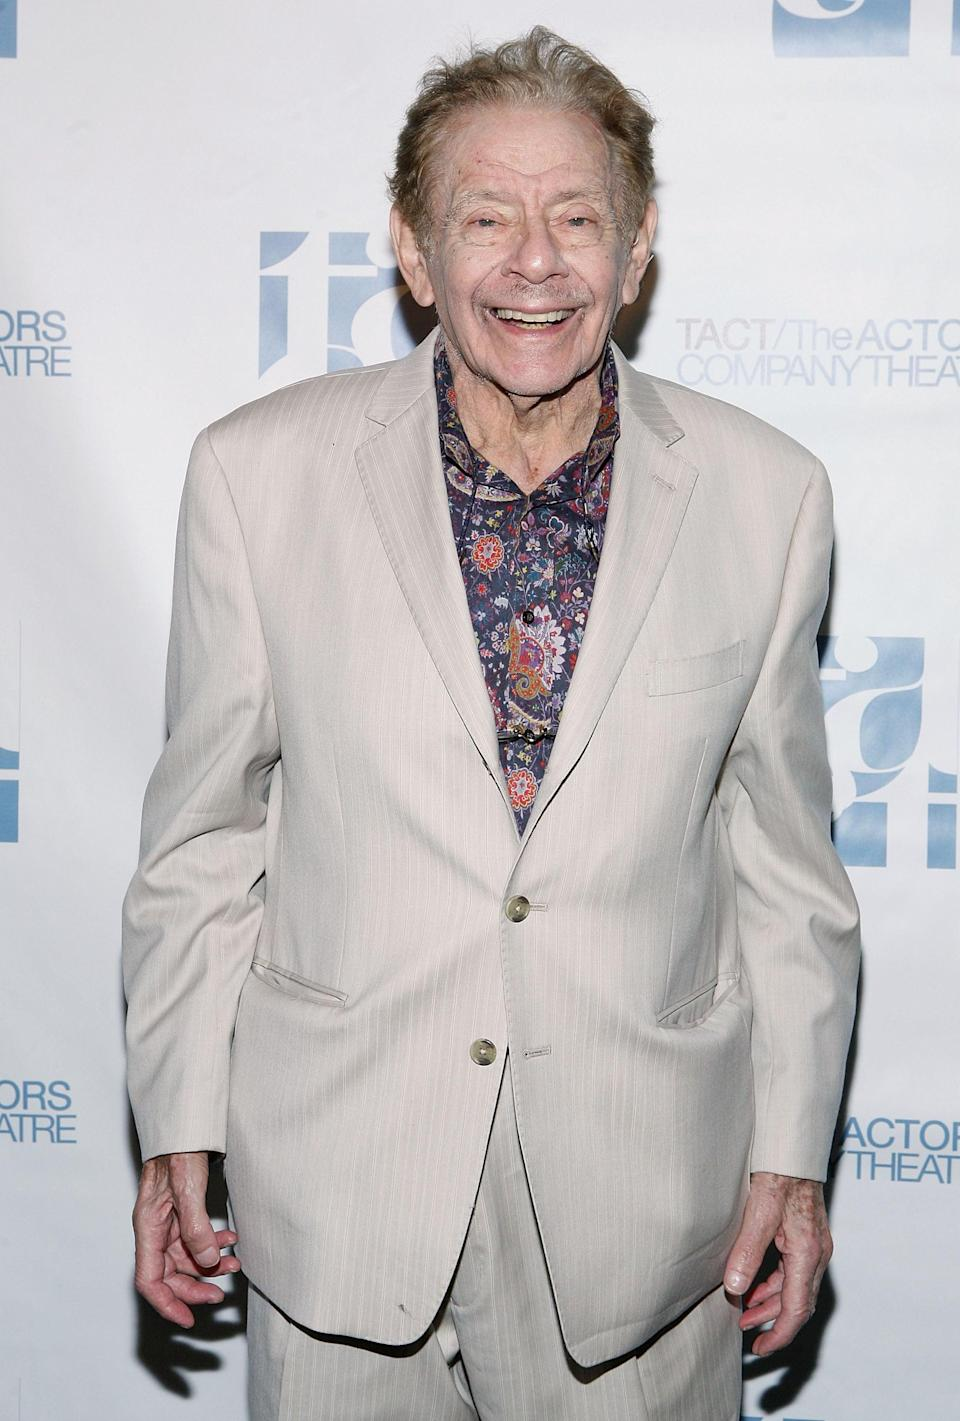 """<p>The actor, whose memorable roles include those on <strong>Seinfeld</strong> and <strong>The King of Queens</strong>, <a href=""""https://www.popsugar.com/celebrity/jerry-stiller-dead-47460162"""" class=""""link rapid-noclick-resp"""" rel=""""nofollow noopener"""" target=""""_blank"""" data-ylk=""""slk:died from natural causes in May"""">died from natural causes in May</a>. His son, <a class=""""link rapid-noclick-resp"""" href=""""https://www.popsugar.com/Ben-Stiller"""" rel=""""nofollow noopener"""" target=""""_blank"""" data-ylk=""""slk:Ben Stiller"""">Ben Stiller</a>, confirmed the news writing, """"I'm sad to say that my father, Jerry Stiller, passed away from natural causes. He was a great dad and grandfather, and the most dedicated husband to Anne for about 62 years. He will be greatly missed. Love you Dad."""" He was 92. </p>"""